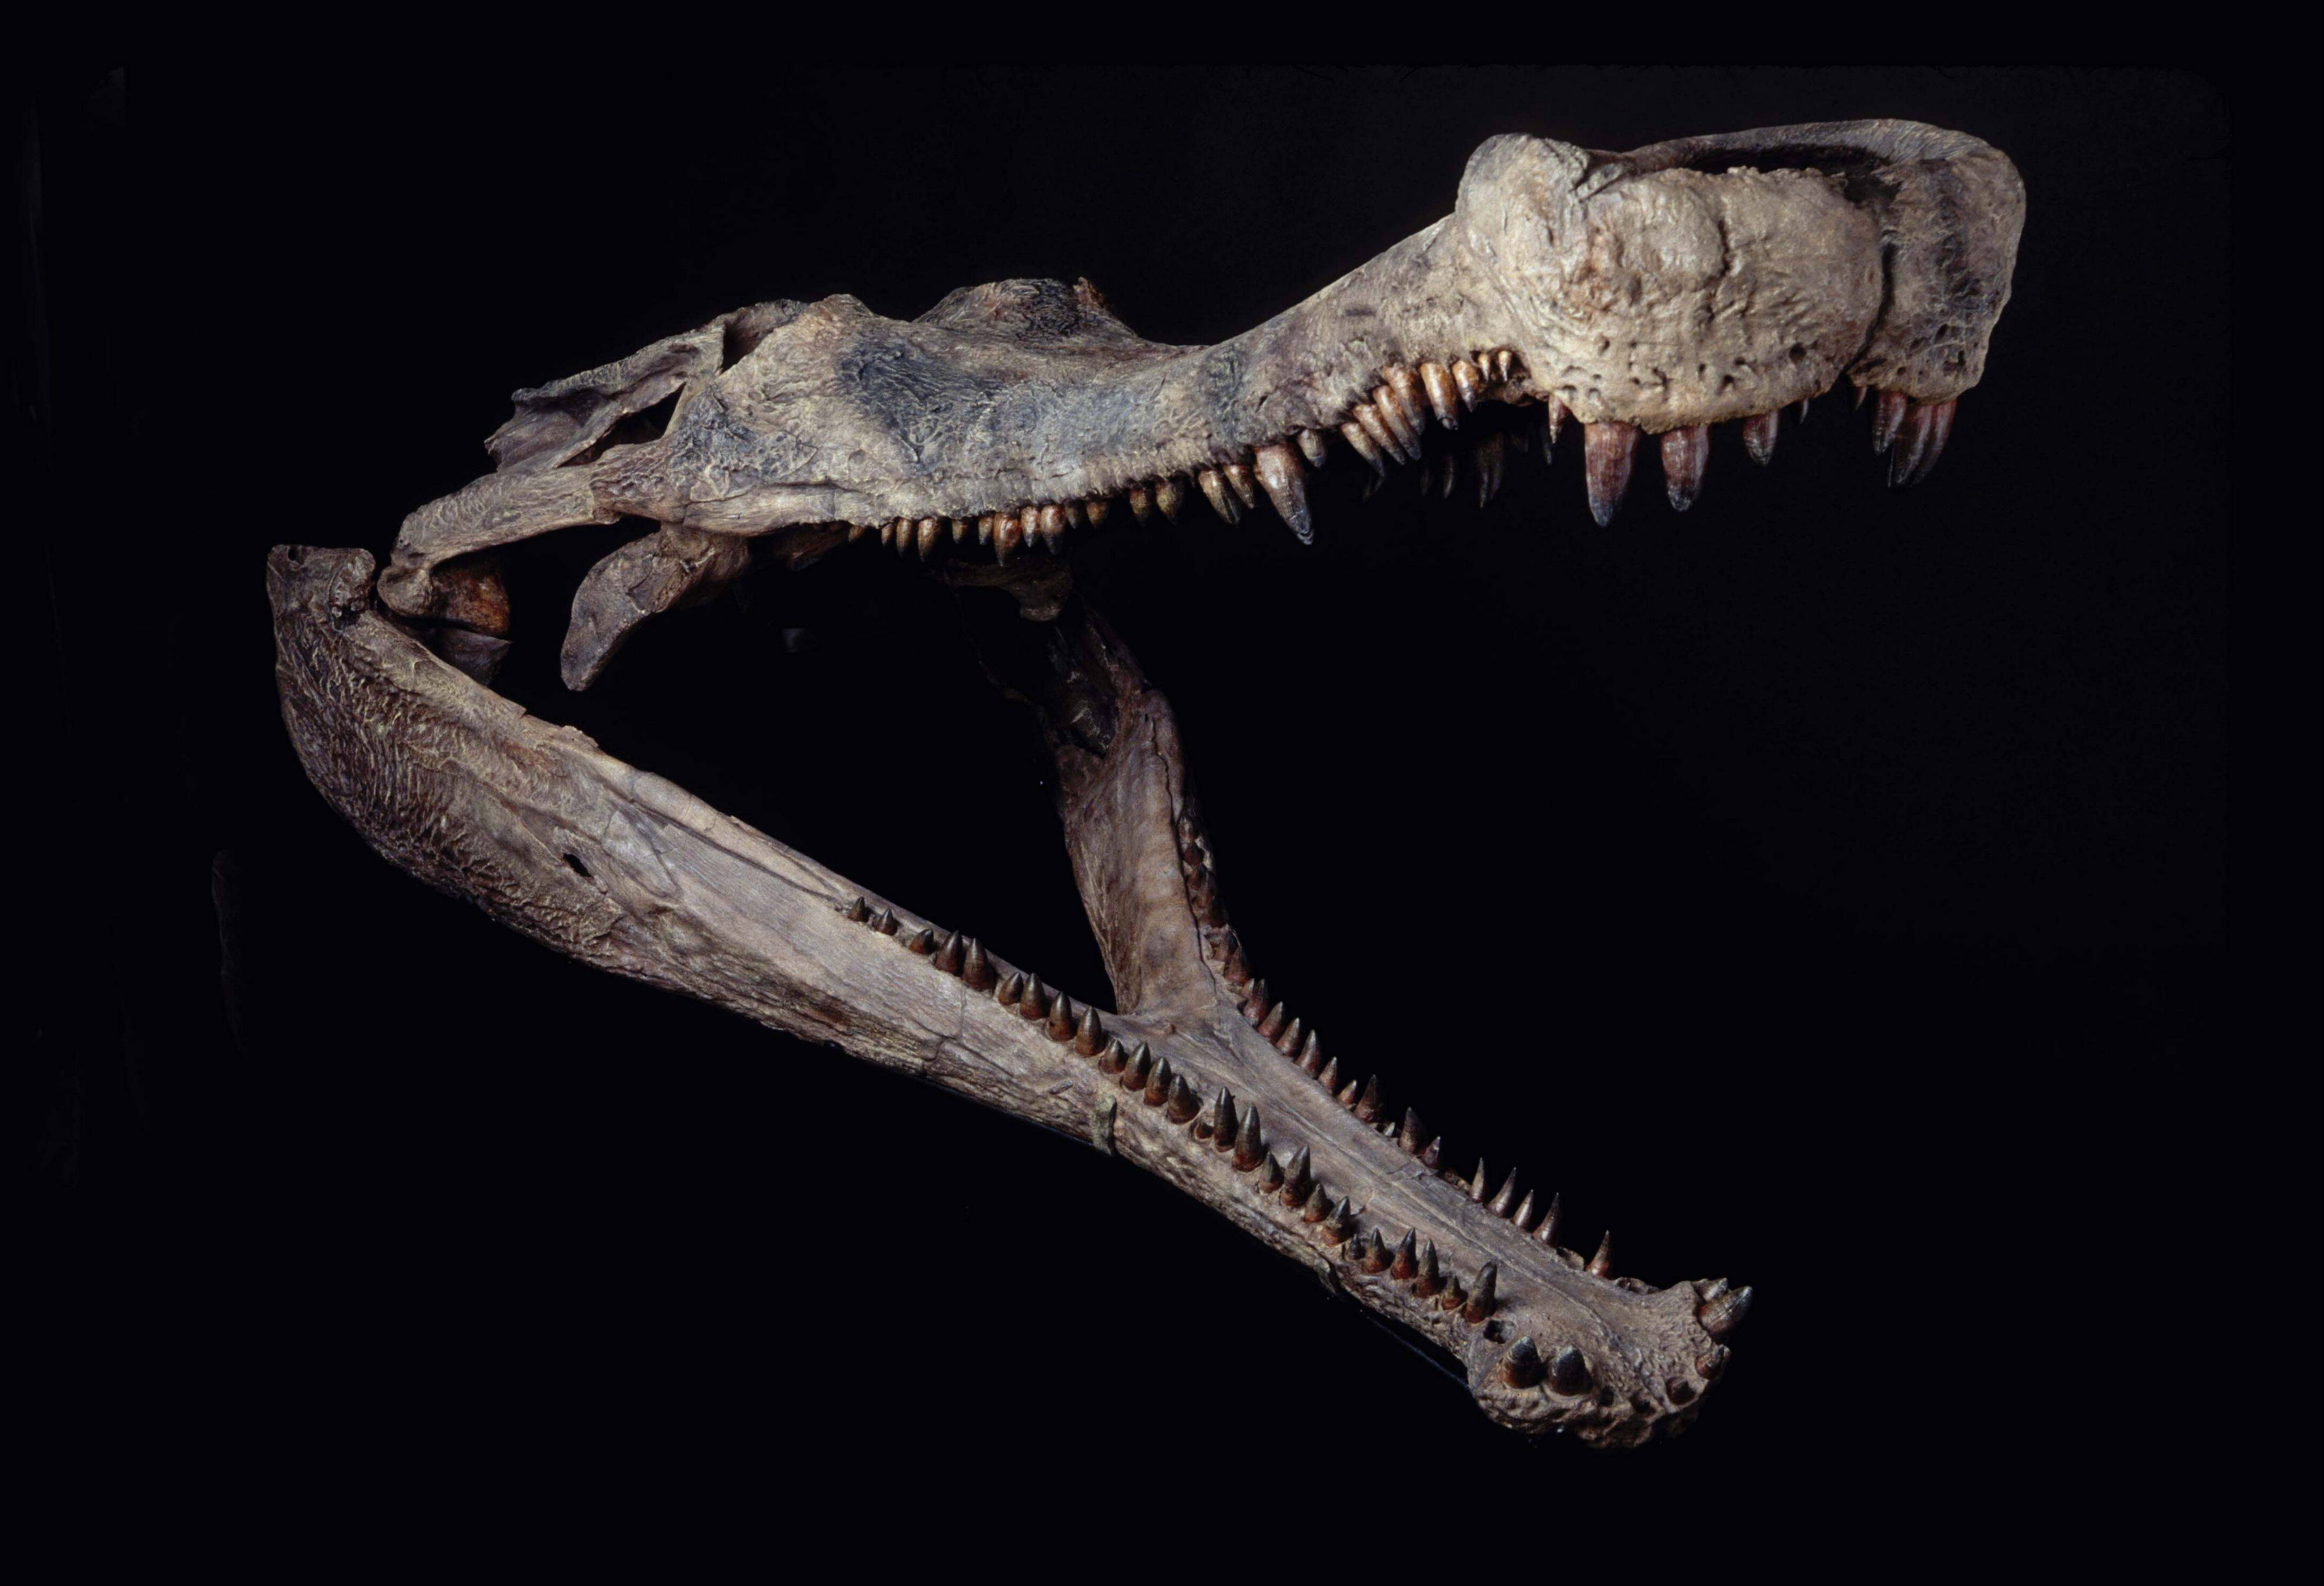 "A ""SuperCroc"" exhibit featuring 40-foot crocodiles that lived 110 million years ago is headed in early May to Gail Borden Public Library in Elgin. Here is the 6-foot skull of a Sarcosuchus found in 2000 in Niger."